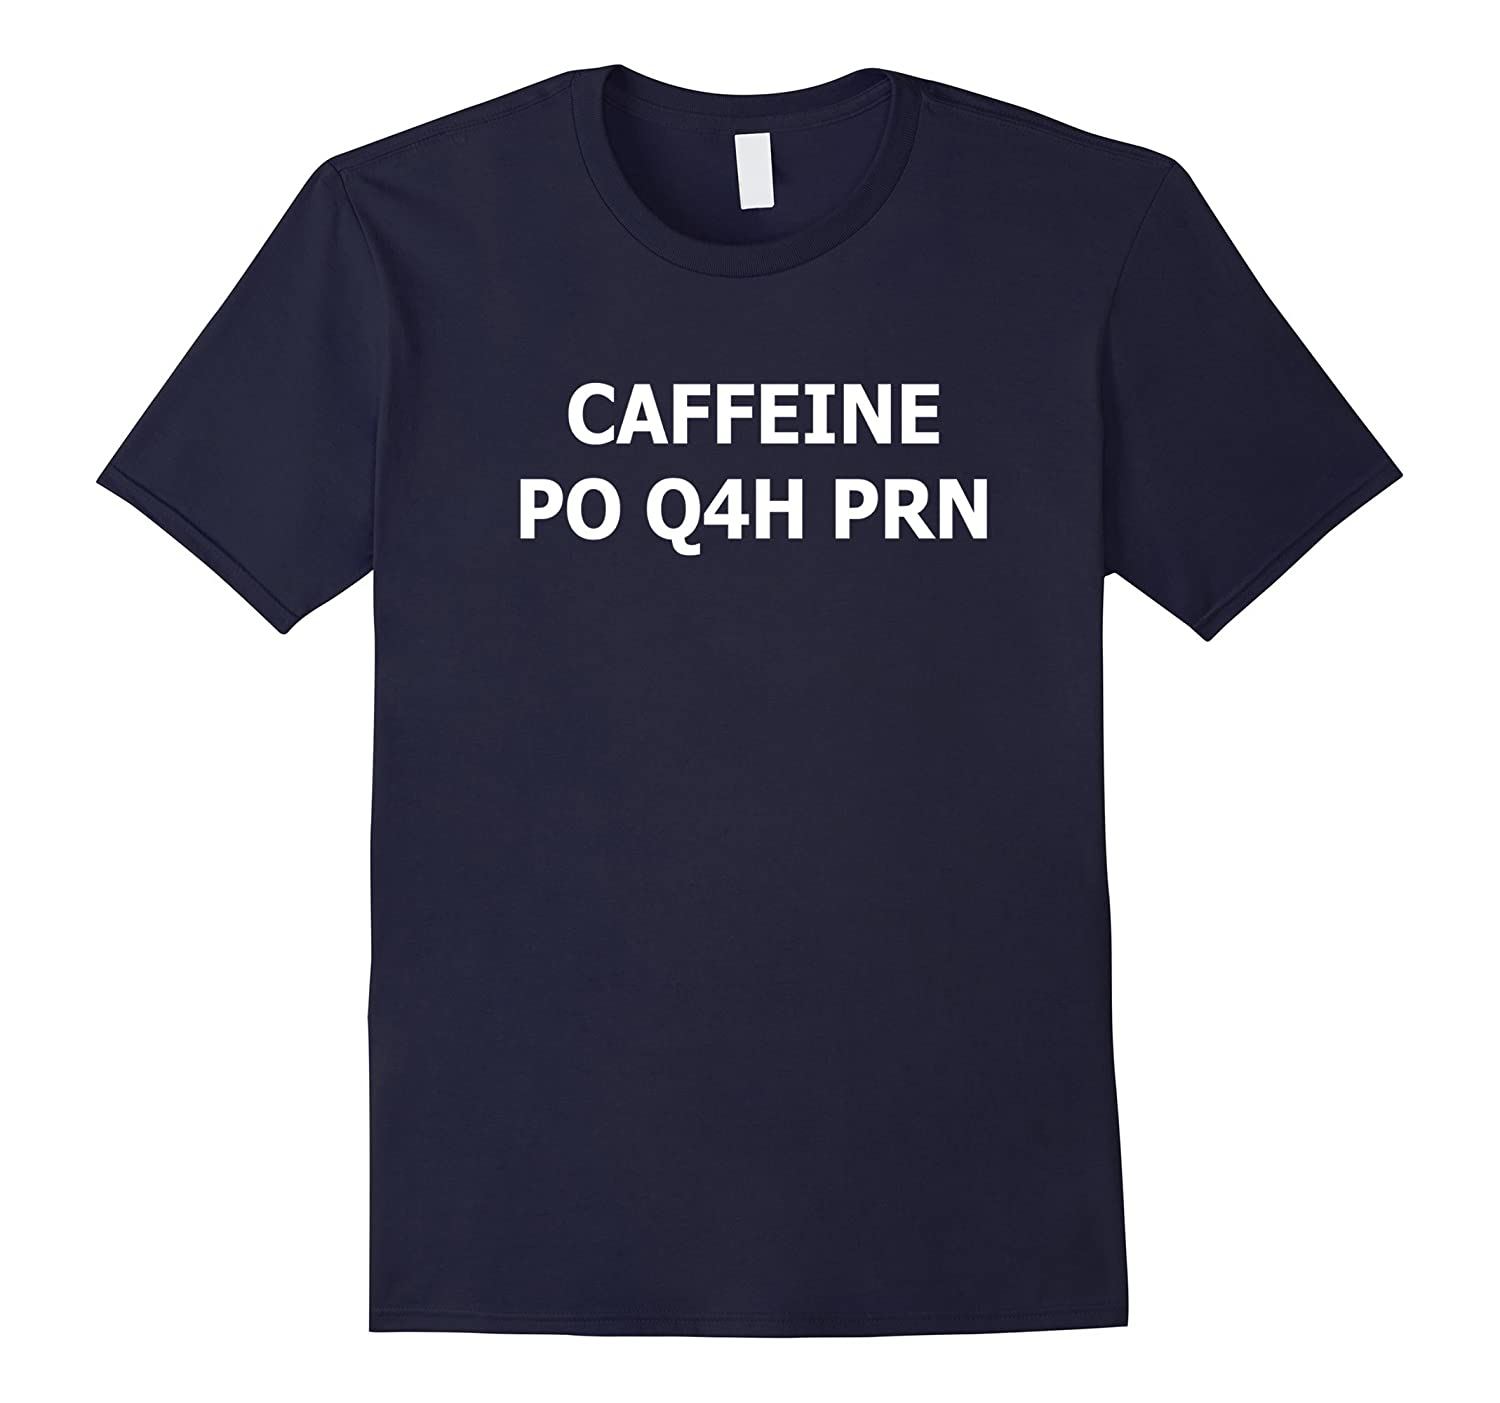 Caffeine Po Q4h Prn T-shirt For Nurses and Pharmacists-TH